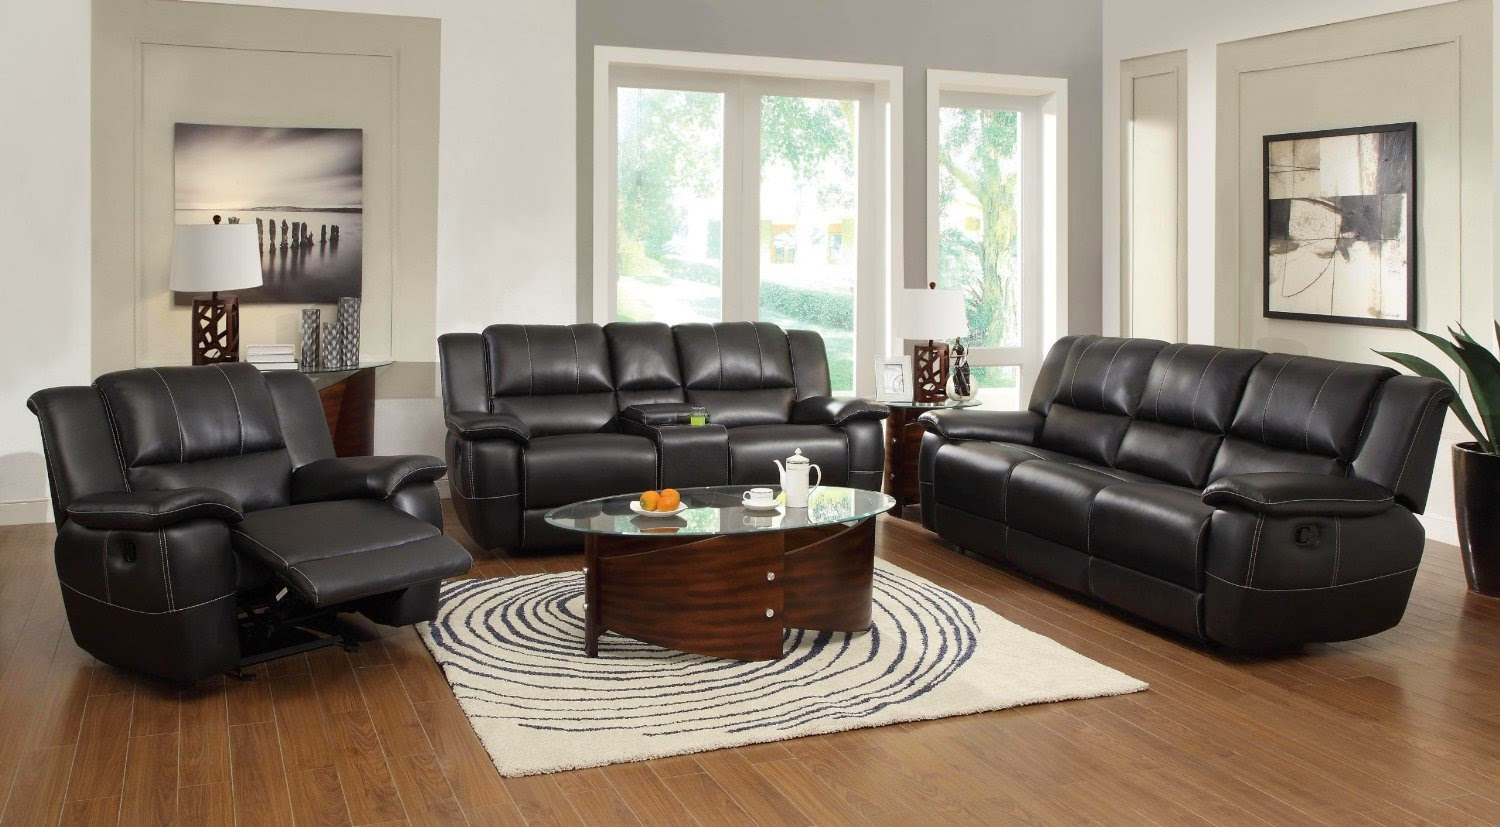 Coaster Home Power Reclining Leather Sofa Reviews & The Best Reclining Sofa Reviews: Power Reclining Leather Sofa Reviews islam-shia.org